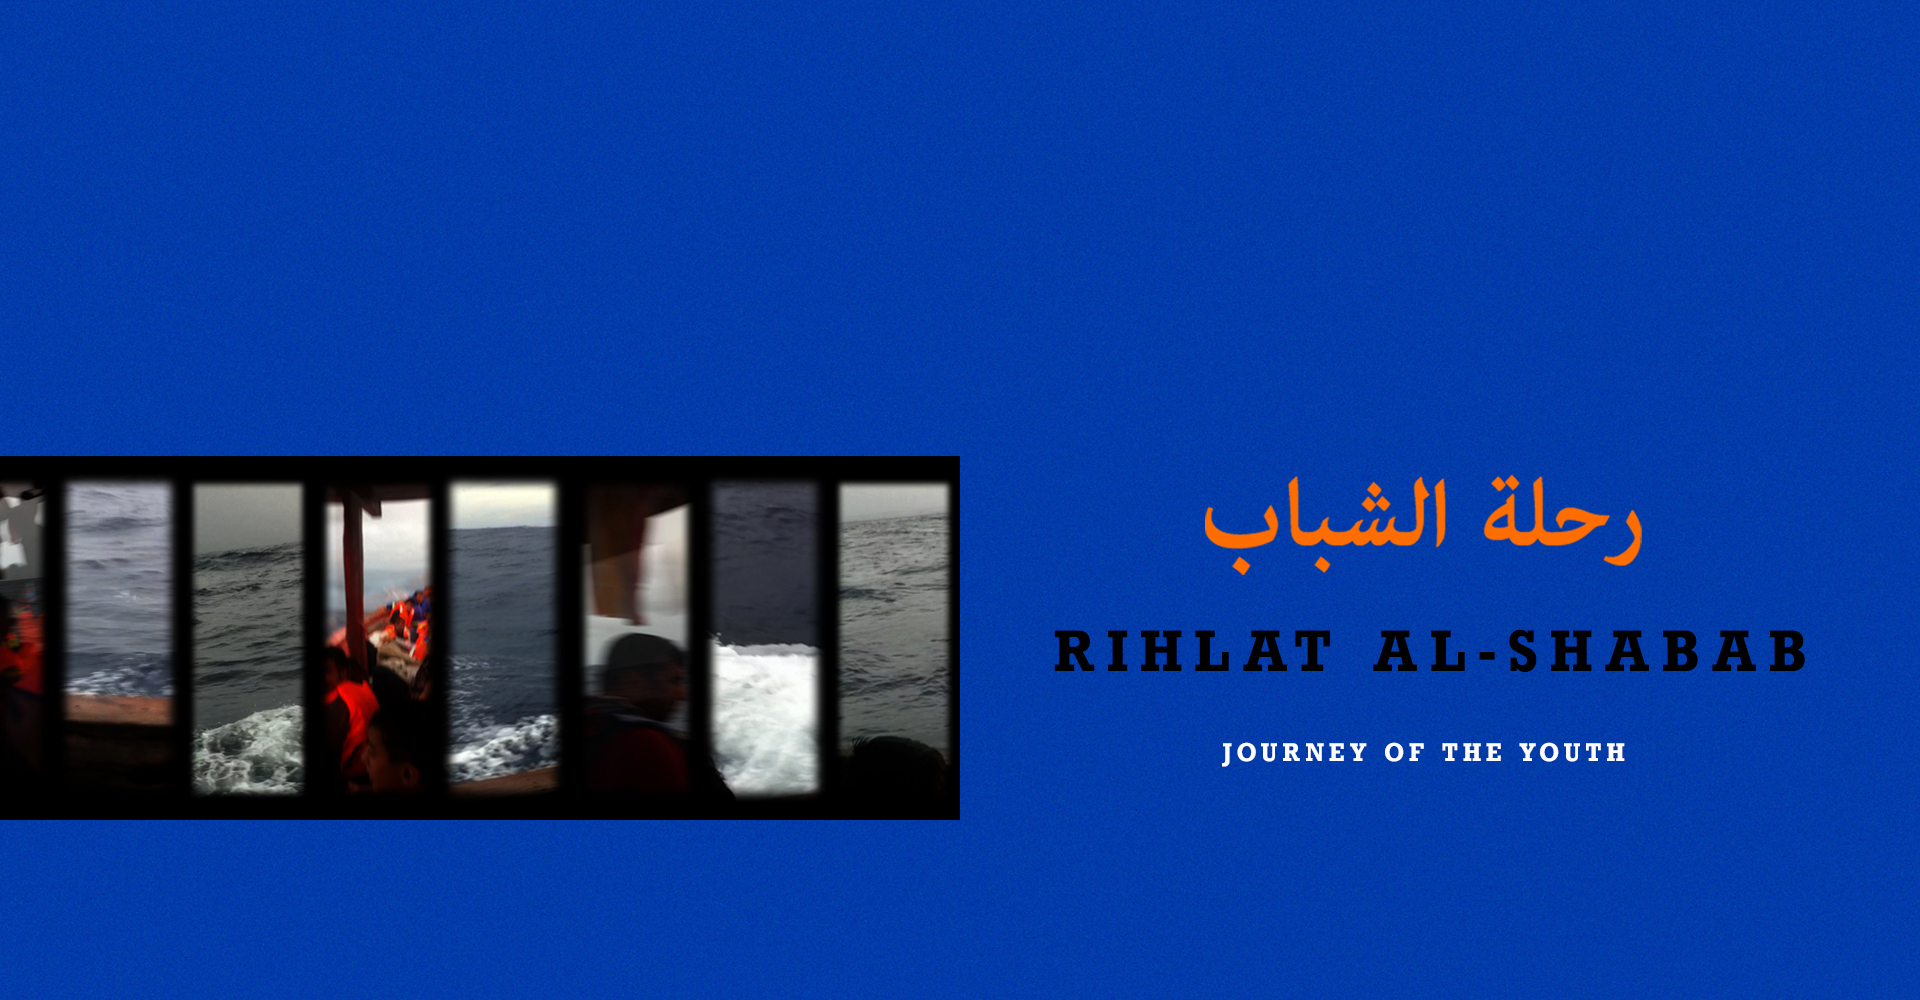 Rihlat al-Shabab (Journey of the Youth) - Information & Cultural Exchange